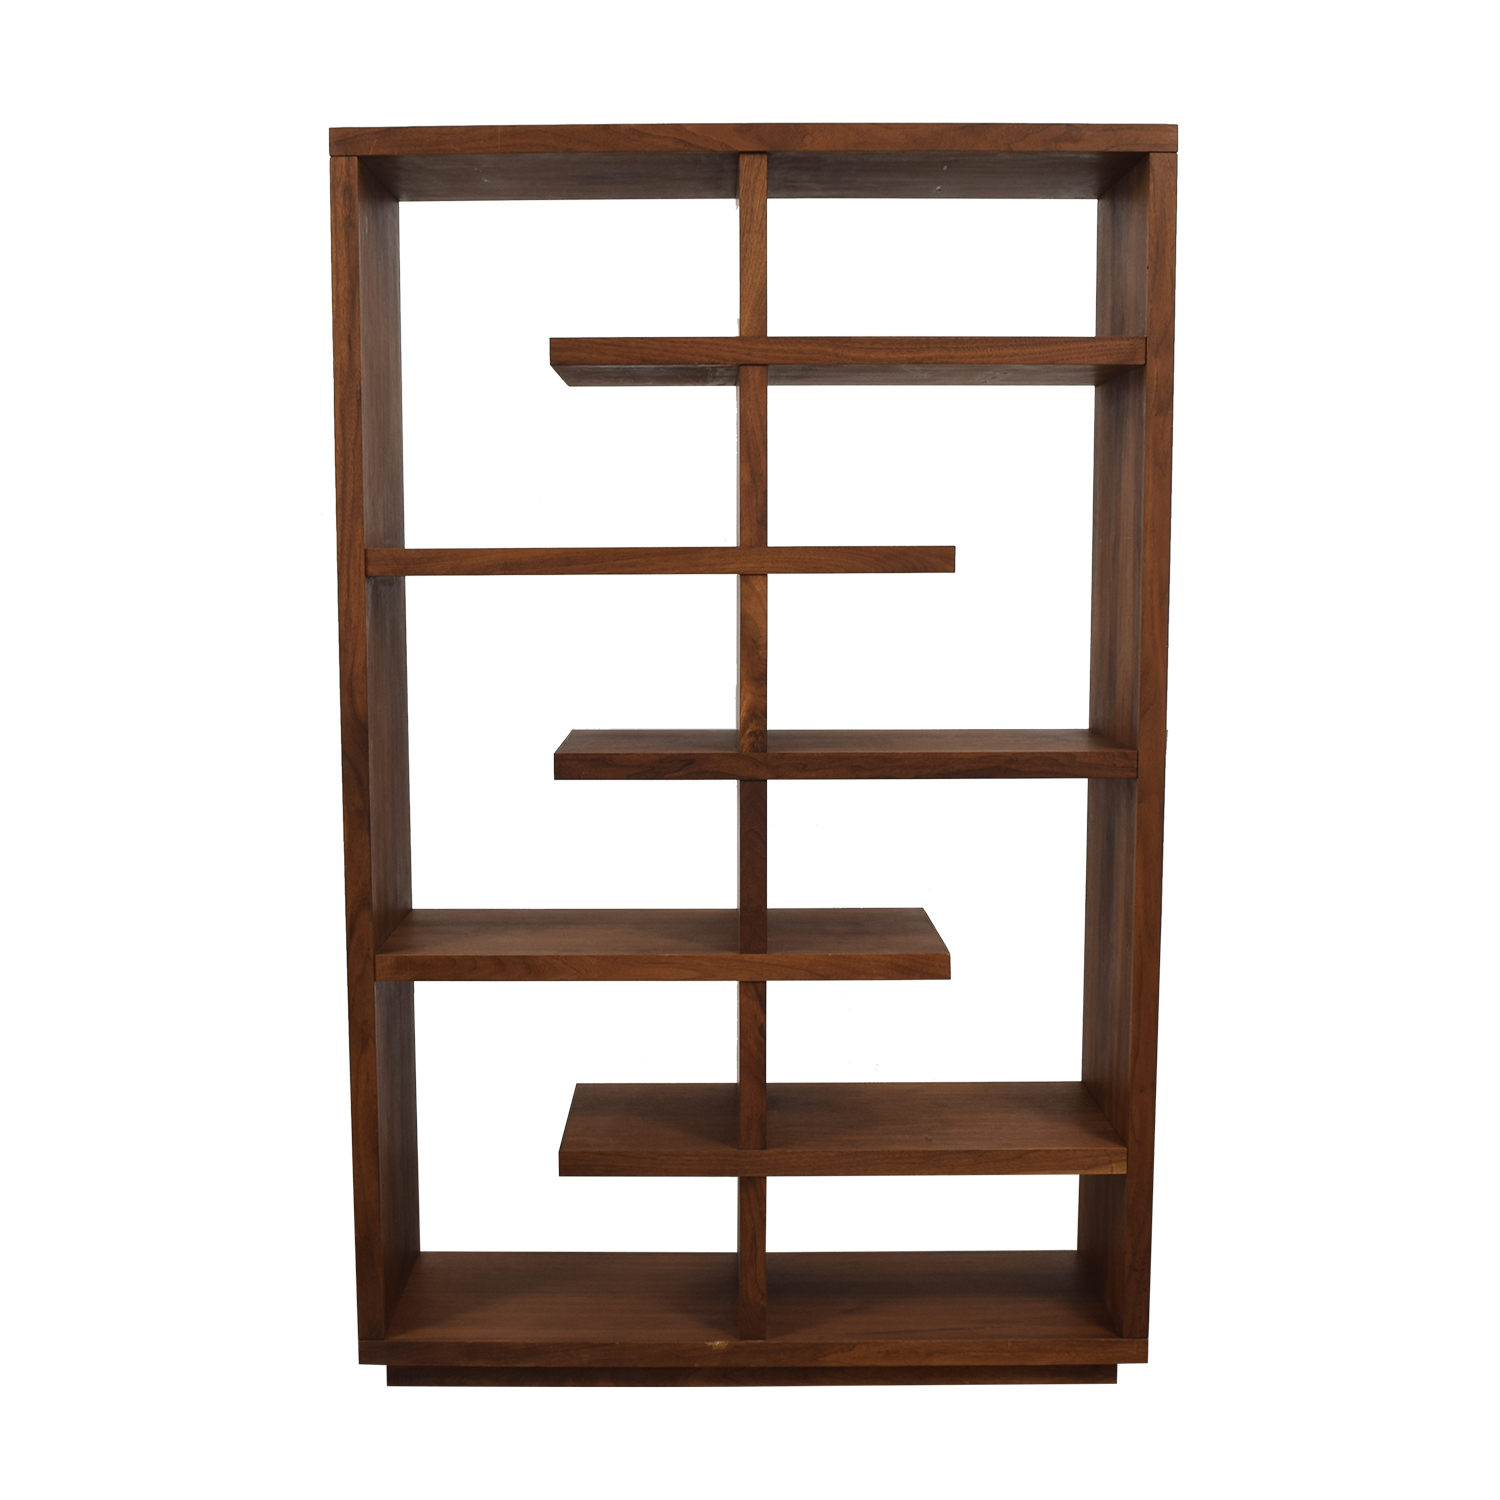 buy Crate & Barrel Elevate Walnut Bookcase Crate & Barrel Bookcases & Shelving